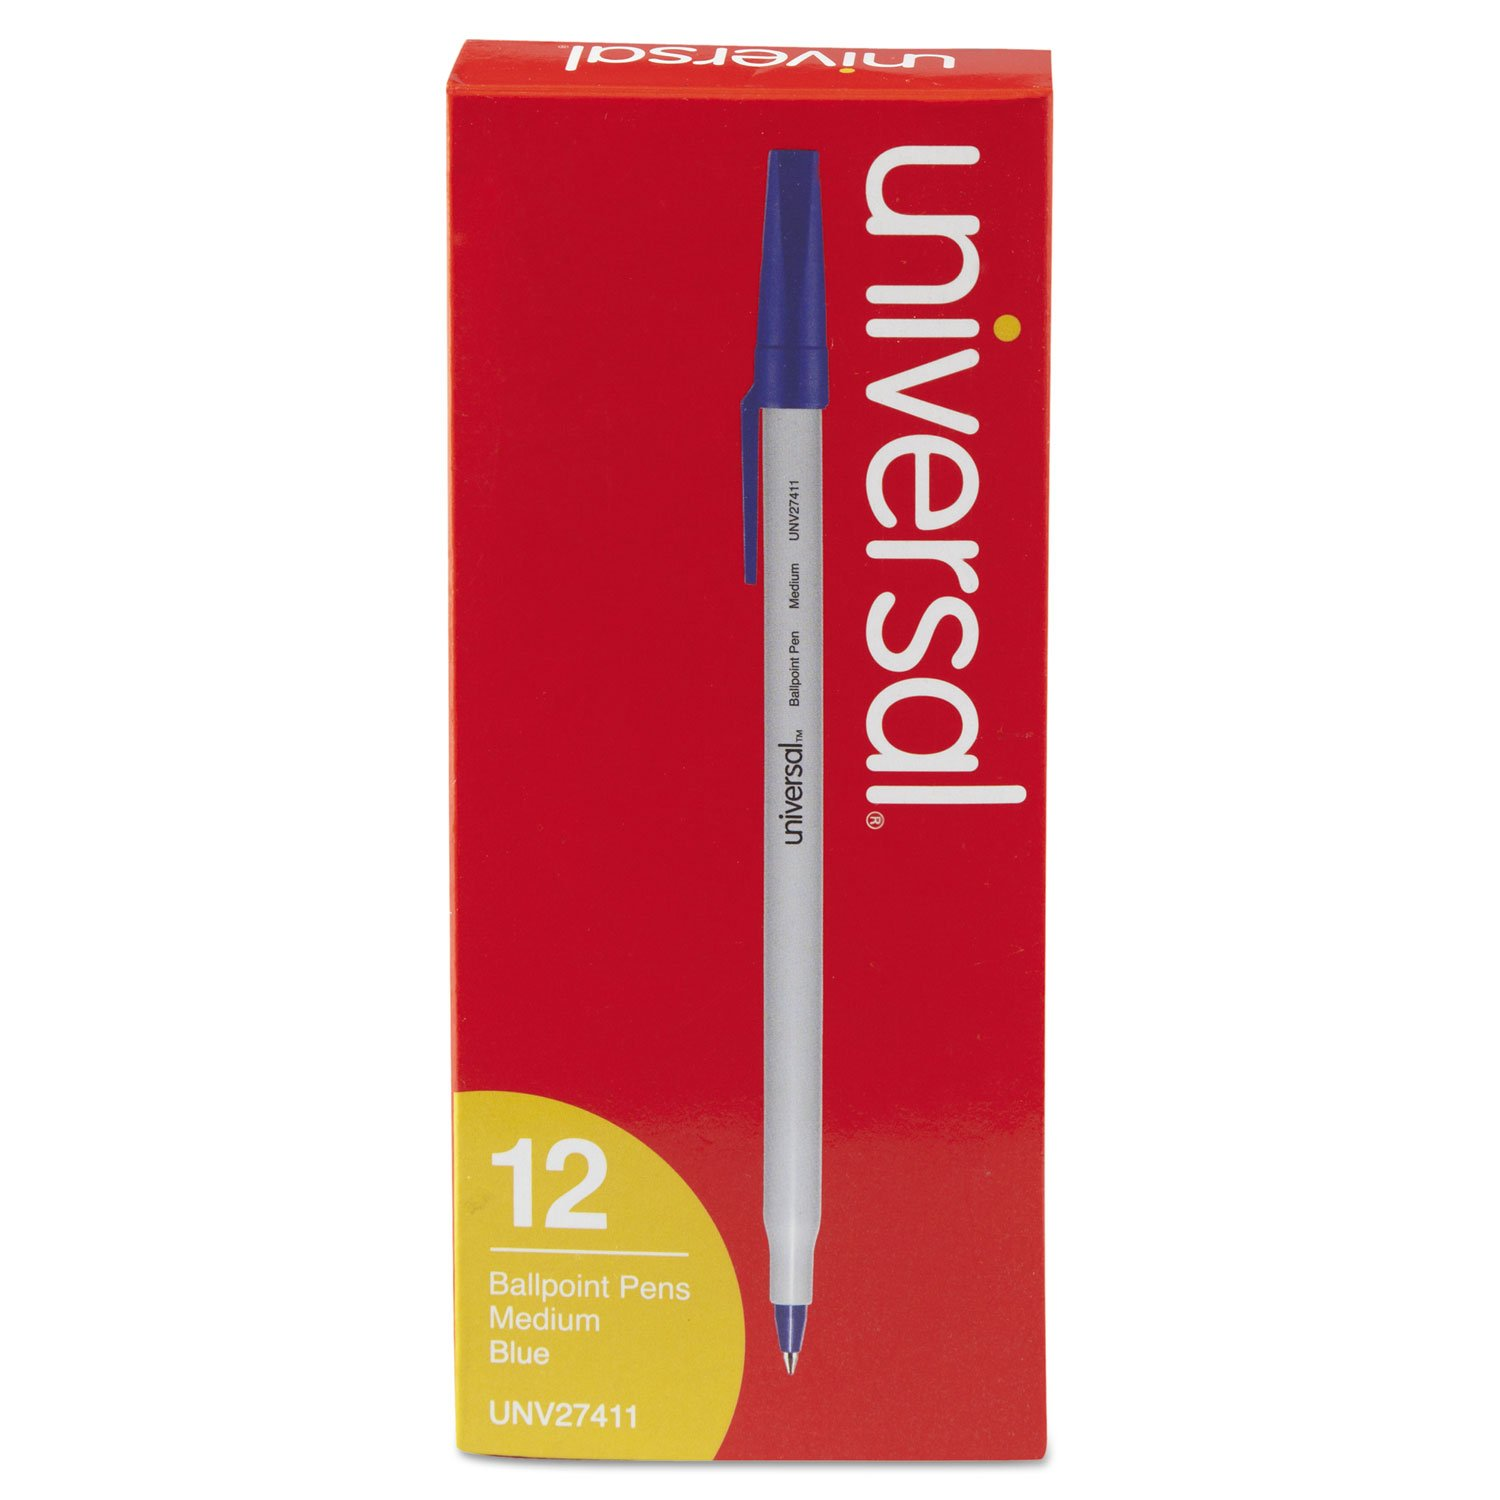 Universal 27411 Medium Point Blue Ink Ballpoint Pen (12 per Pack) (Discontinued by Manufacturer)